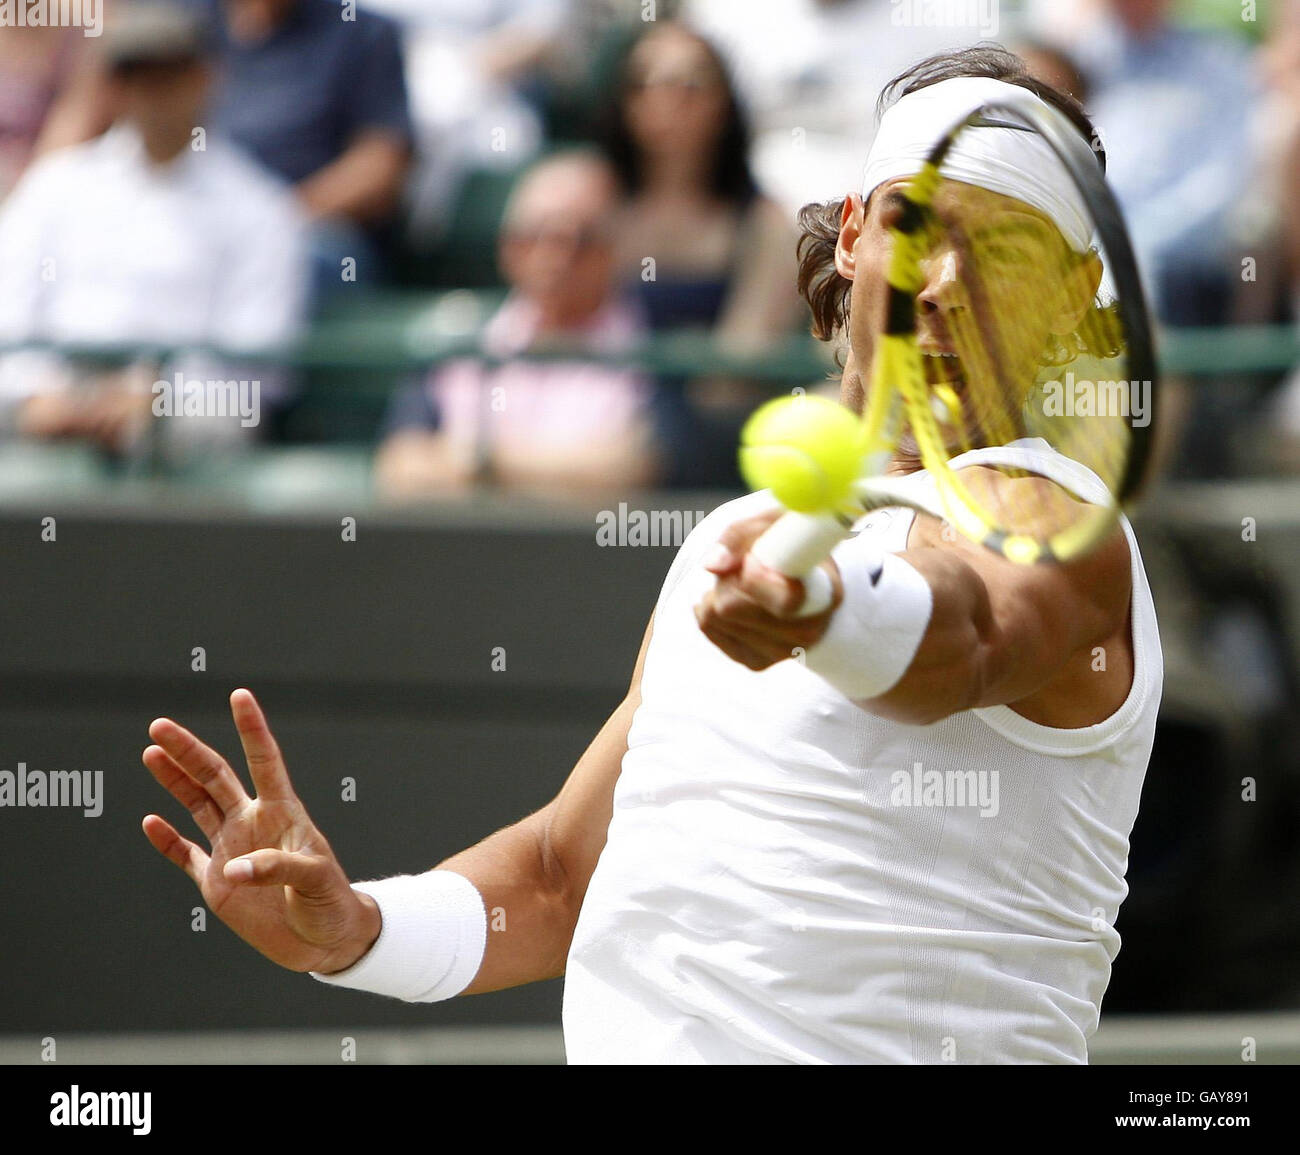 Tennis - Wimbledon Championships 2008 - Day Four - The All England Club - Stock Image